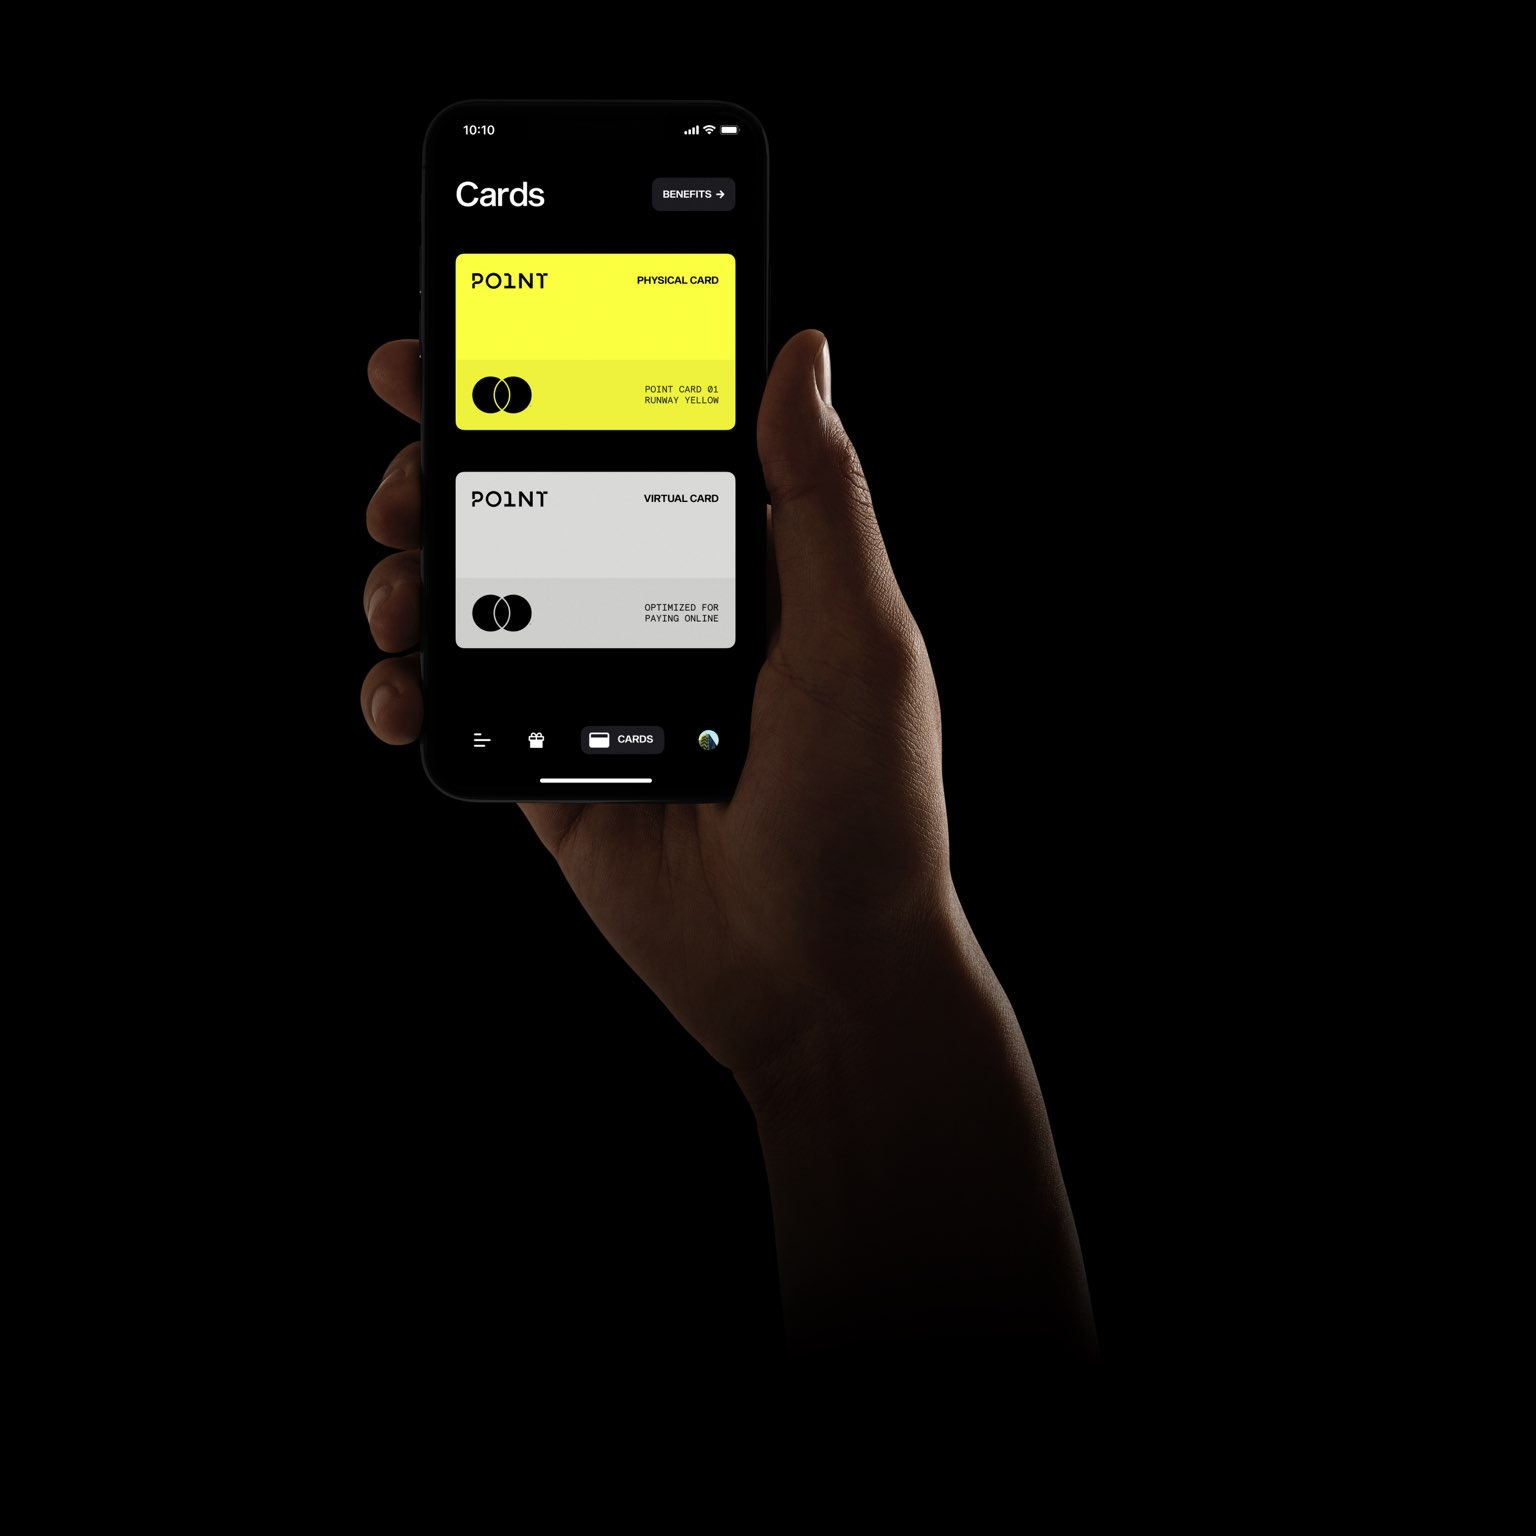 A hand holds up a phone displaying the Point App, on a black backdrop